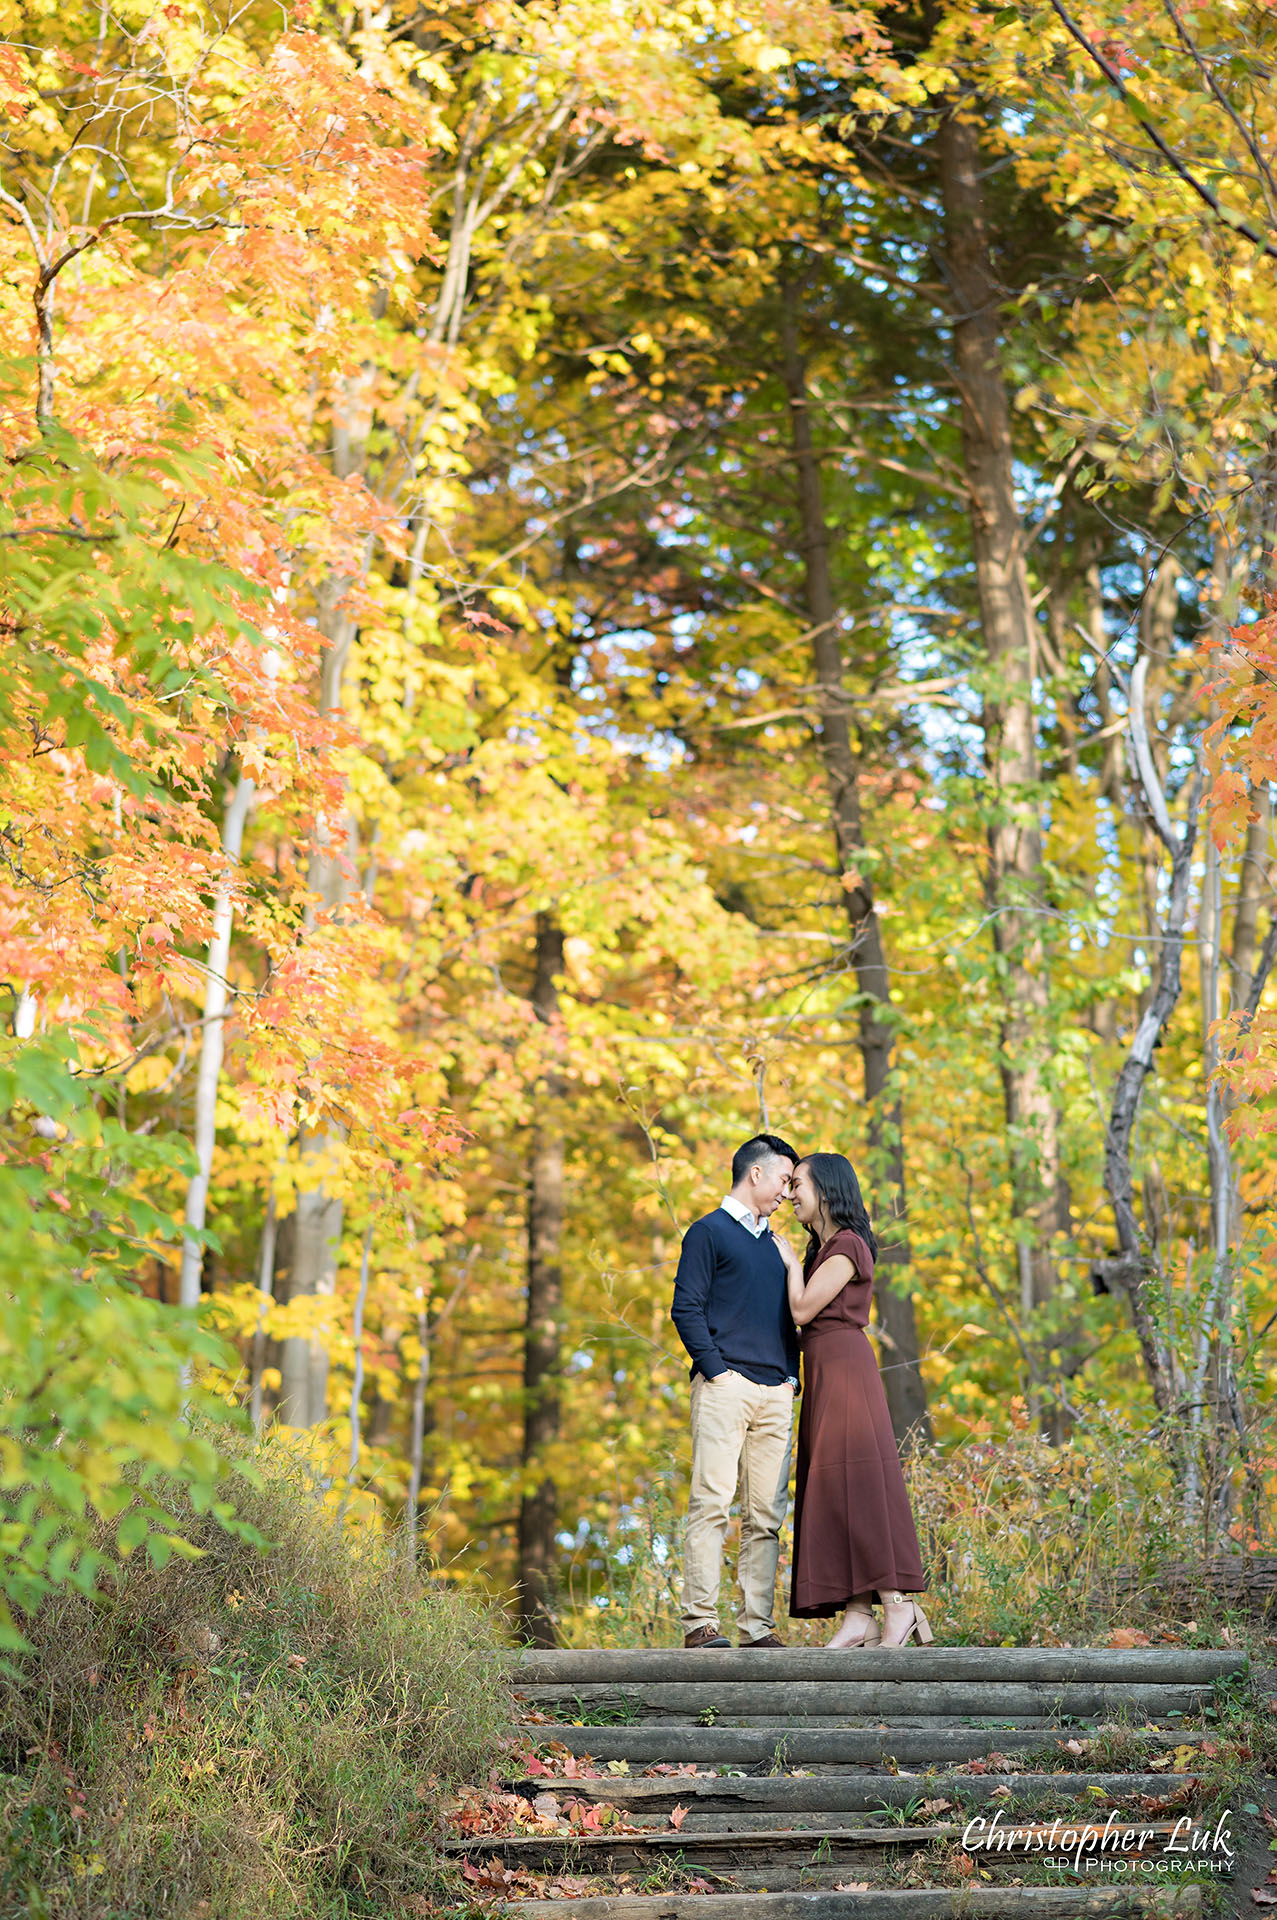 Christopher Luk Toronto Wedding Engagement Session Photographer Autumn Fall Leaves Natural Candid Photojournalistic Bride Groom Hiking Trail Trees Hug Holding Each Other Together Orange Red Yellow Kiss Wood Wooden Stairs Staircase Hiking Trail Steps Vertical